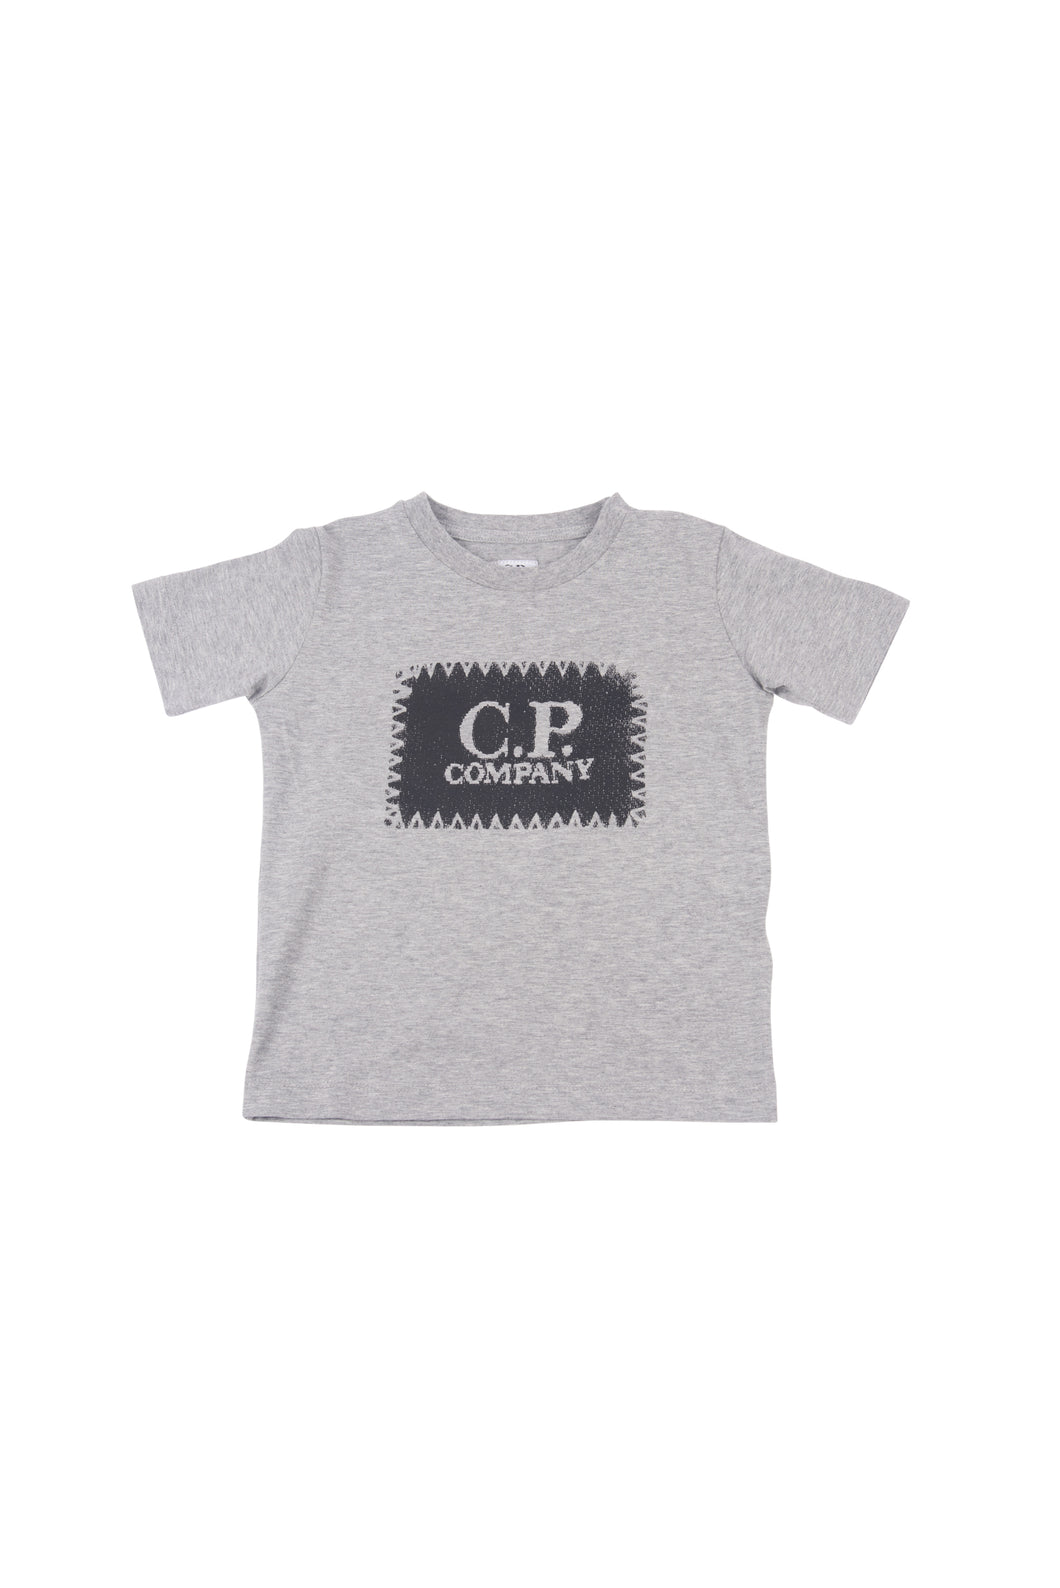 CP Company Junior Stitch Logo T-shirt In Grey